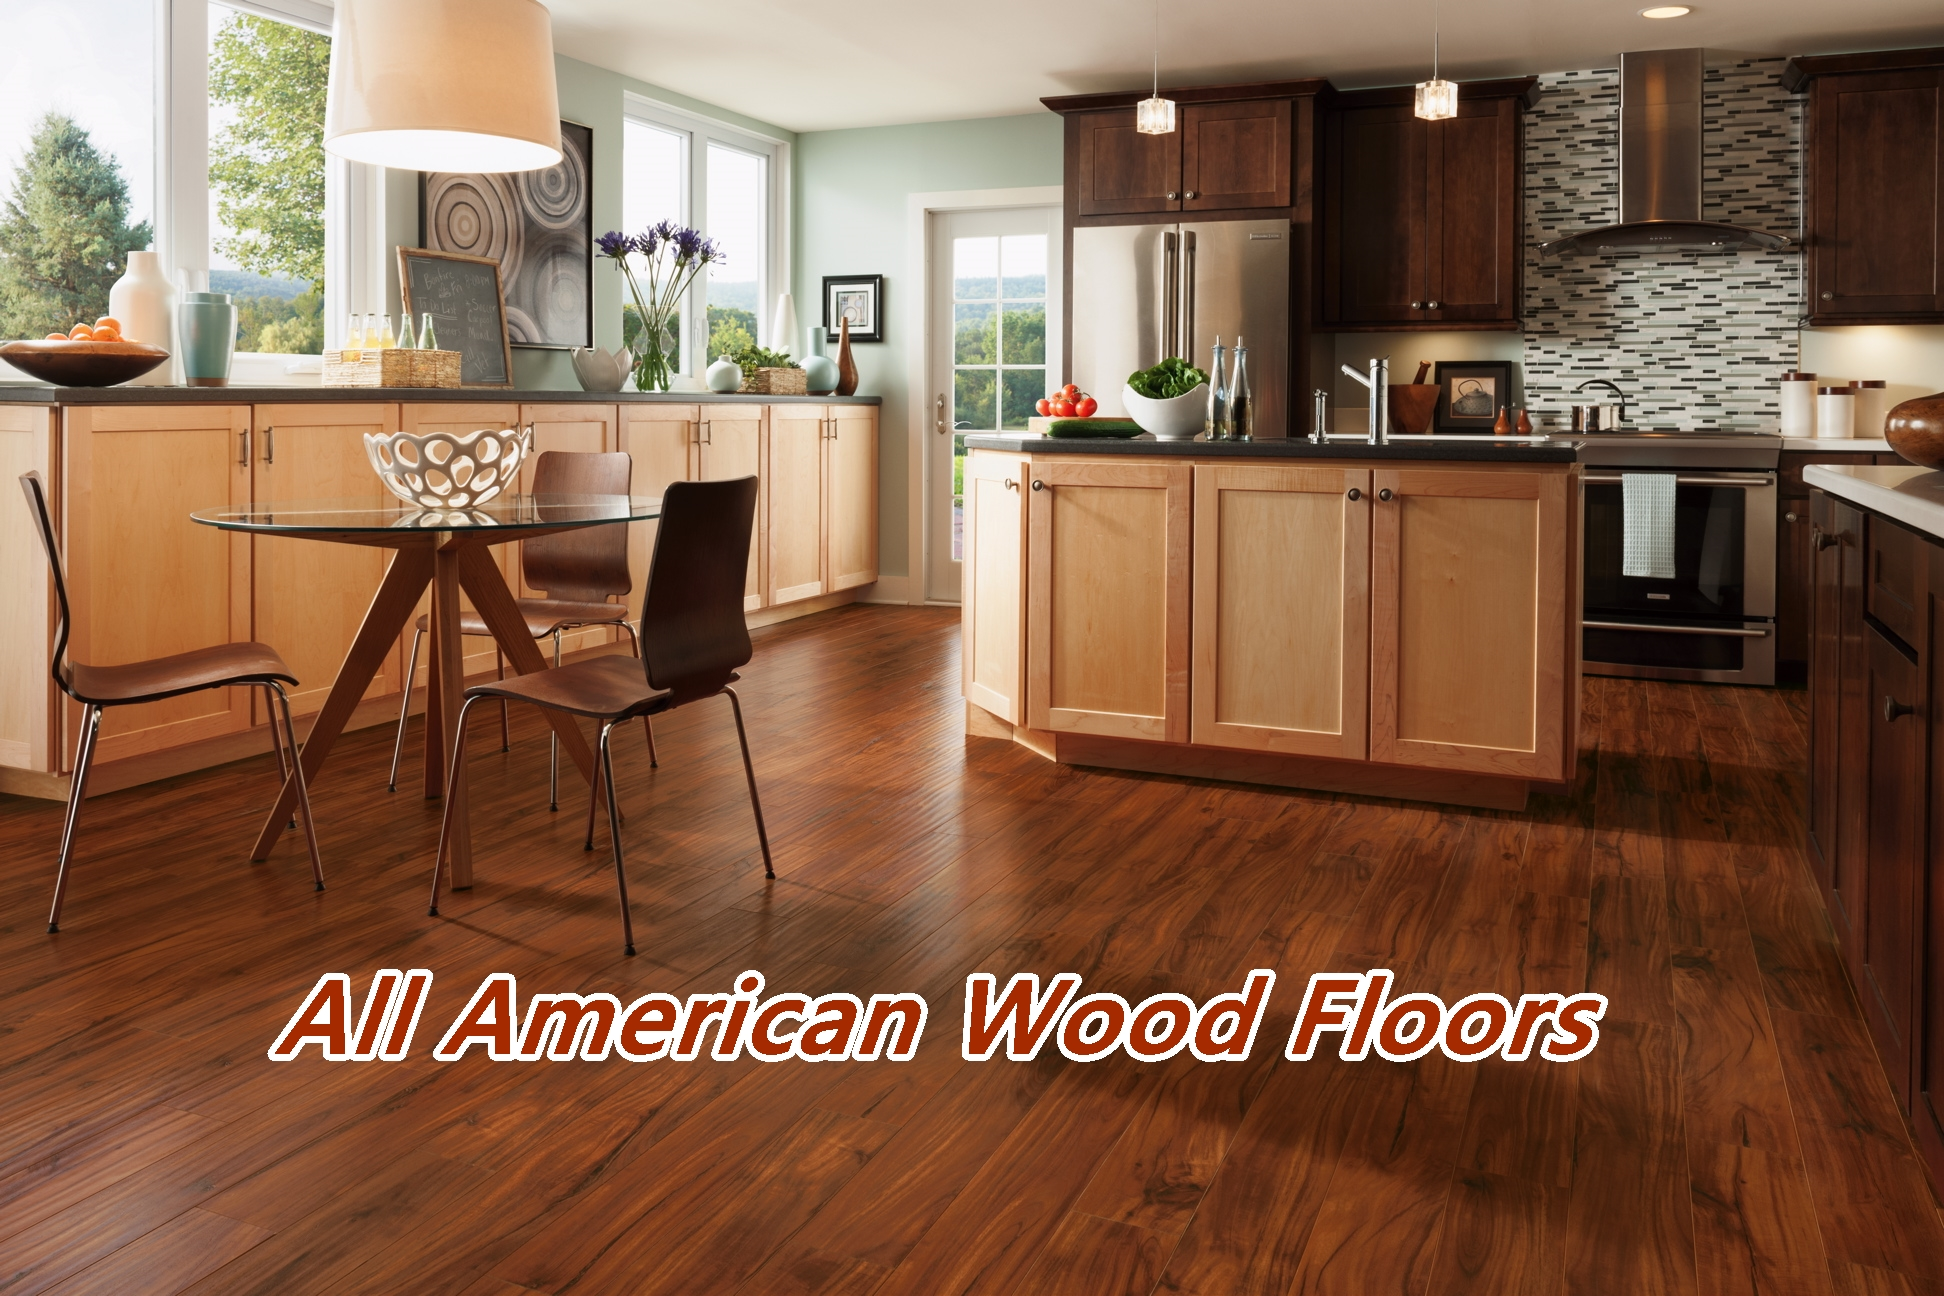 Wooden Floors In Kitchen All American Wood Floors Orlando Winter Park Melbourne